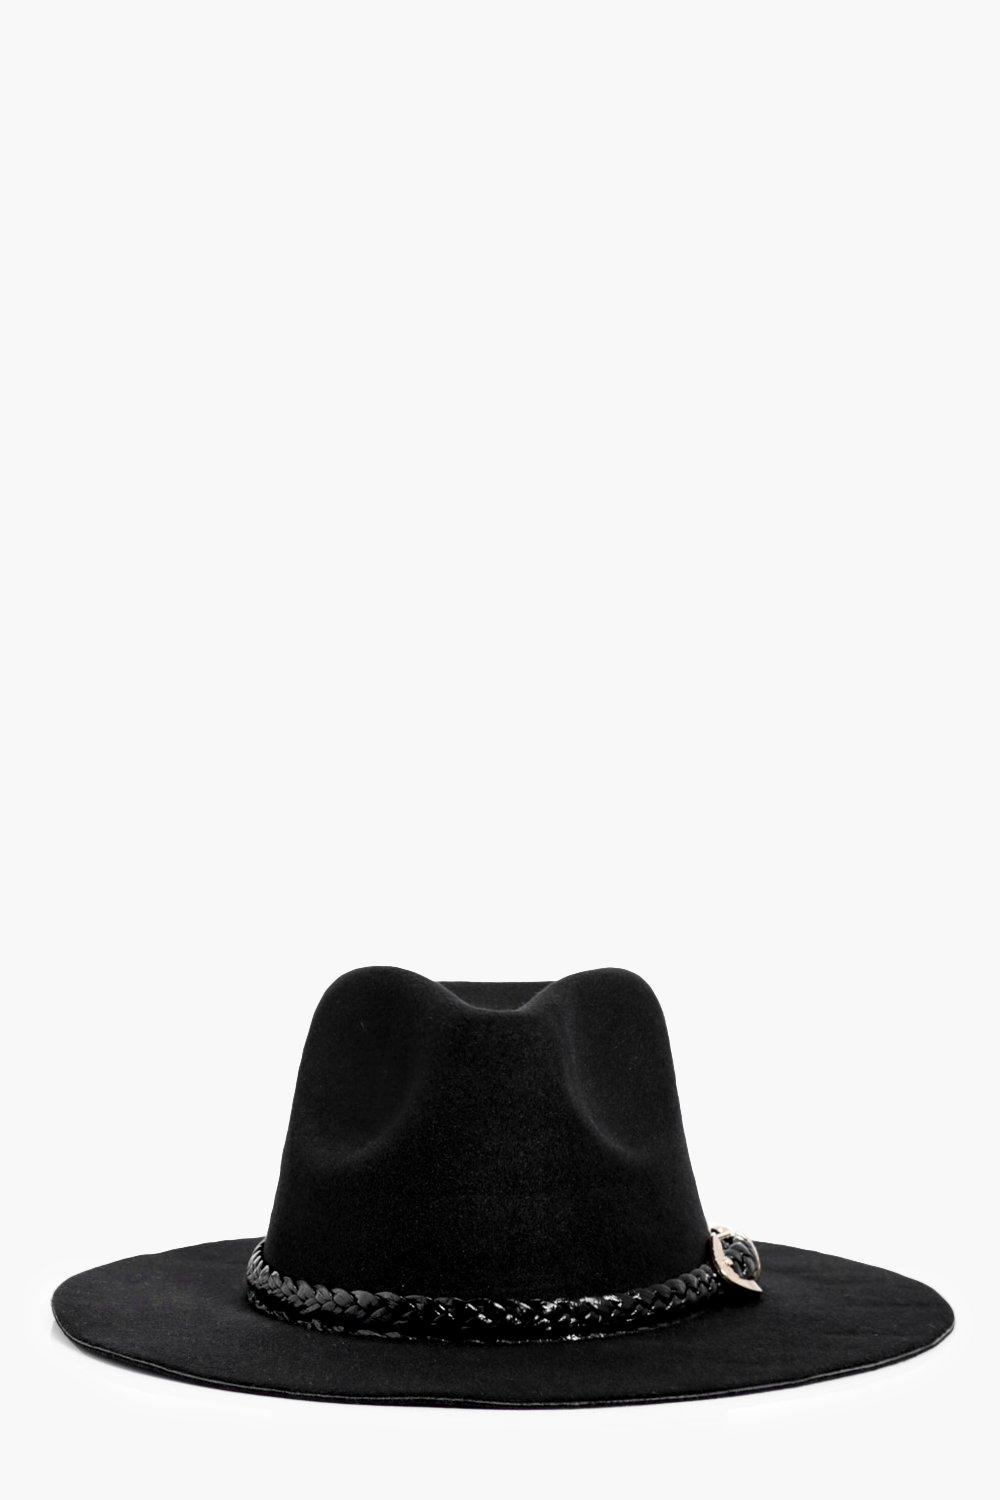 PU Plait Band Fedora - black - Emily PU Plait Band